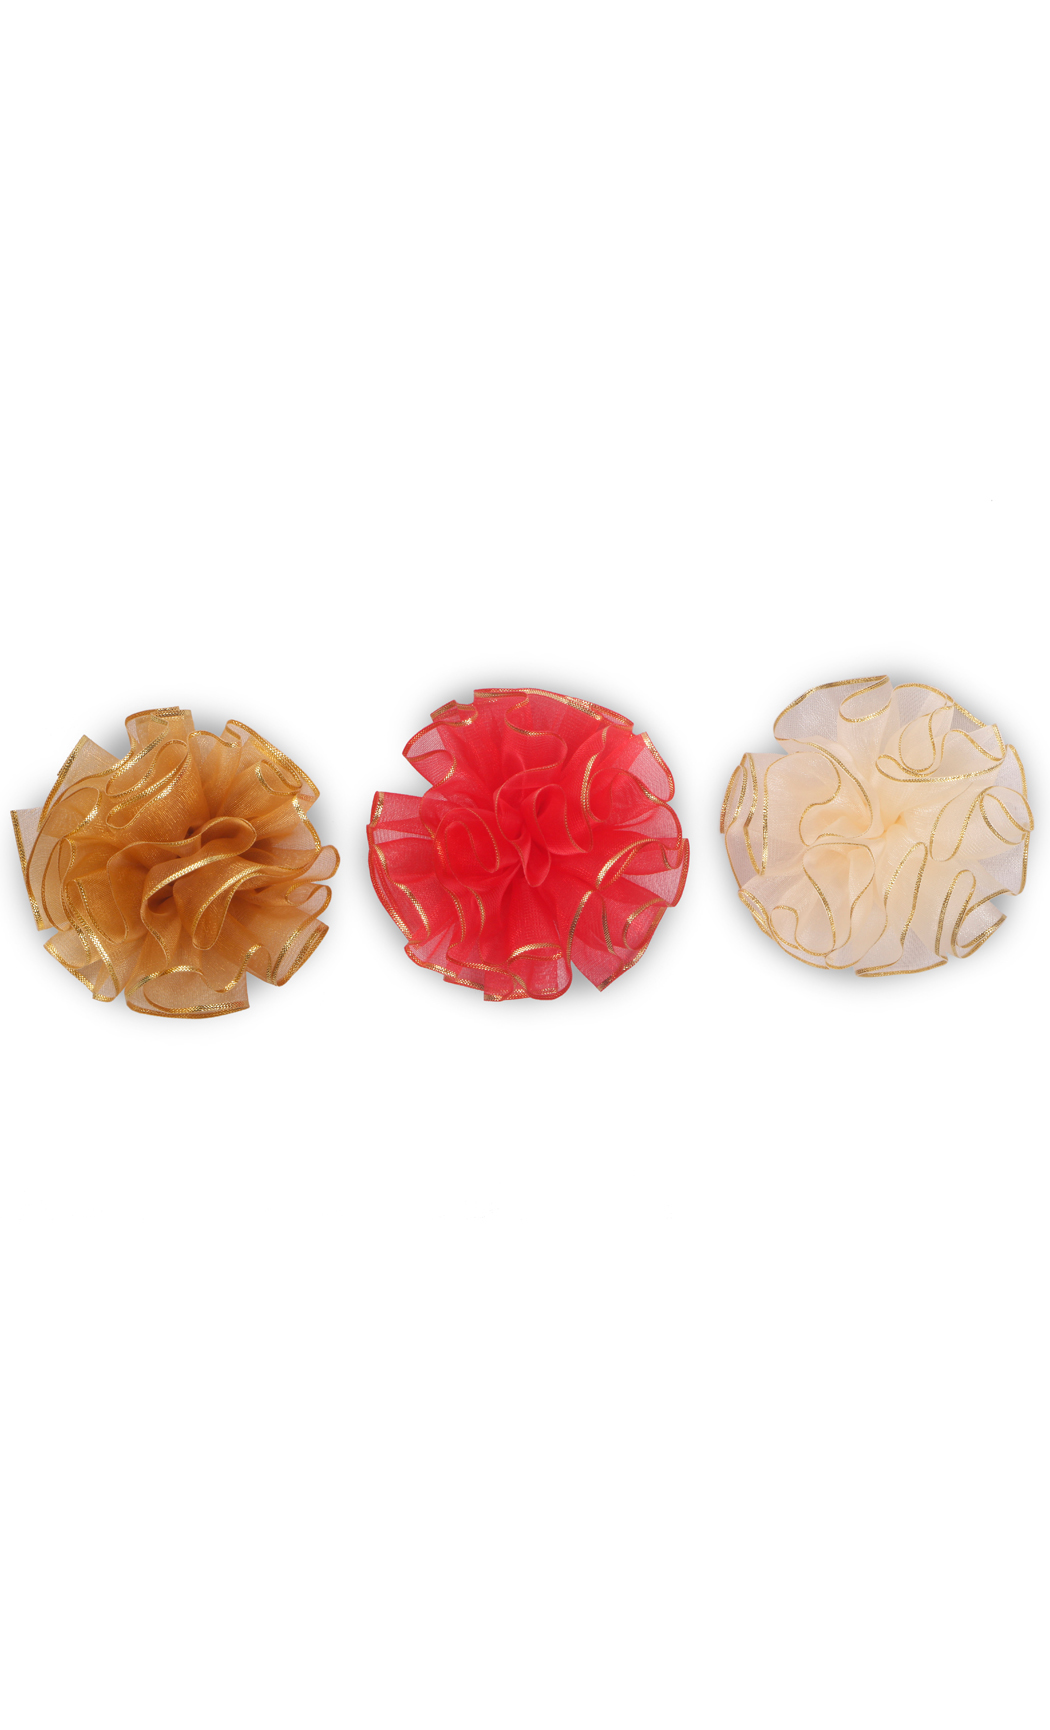 Ready to Stick Gold Rim Bows (Set of 3) - Buy Online